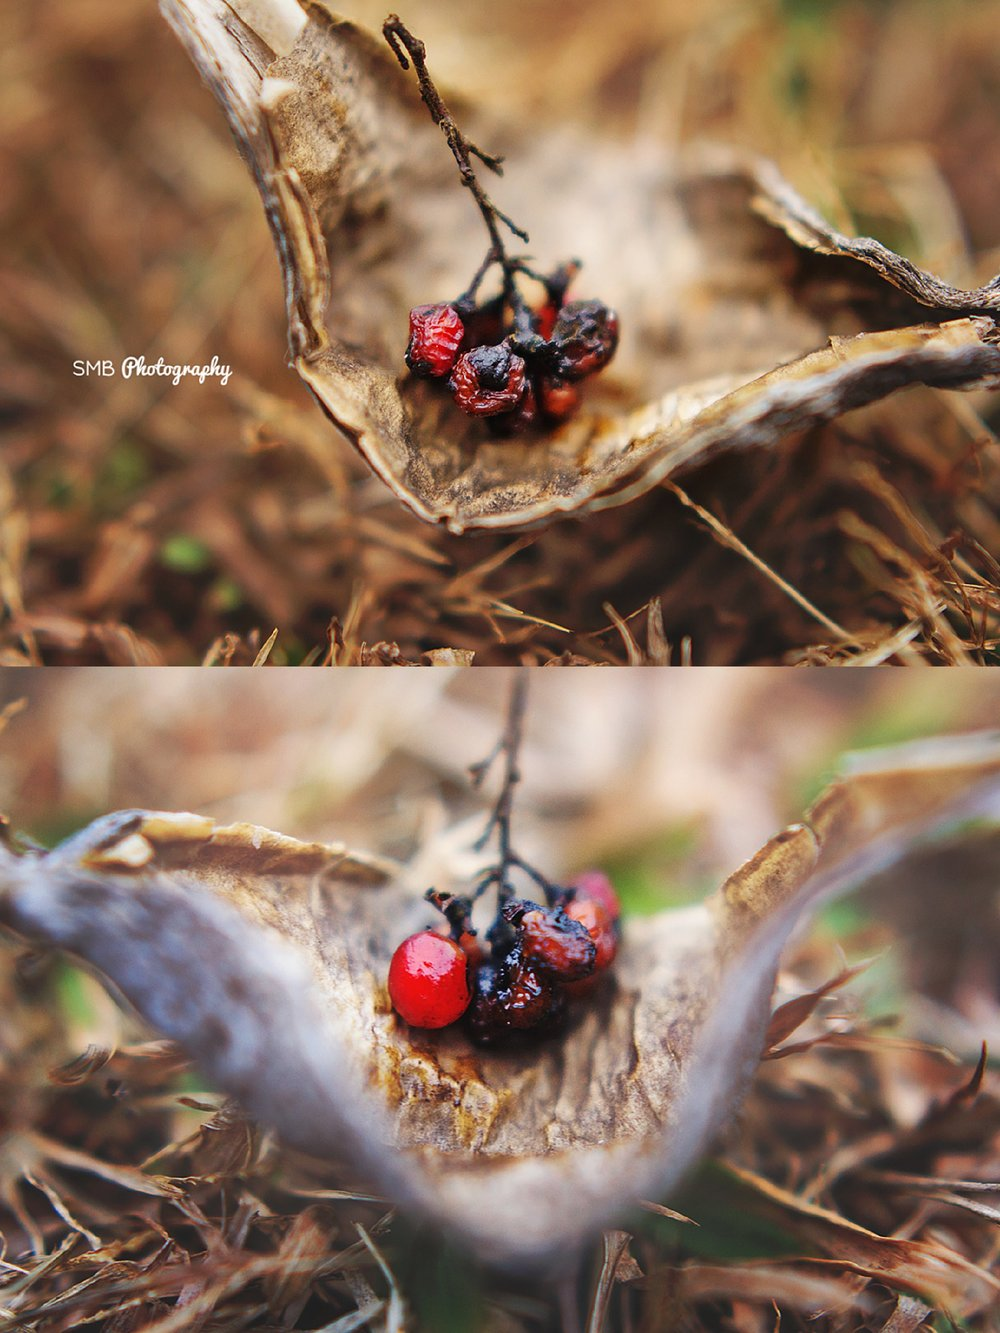 Macro Photography | Berries | SMB Photography